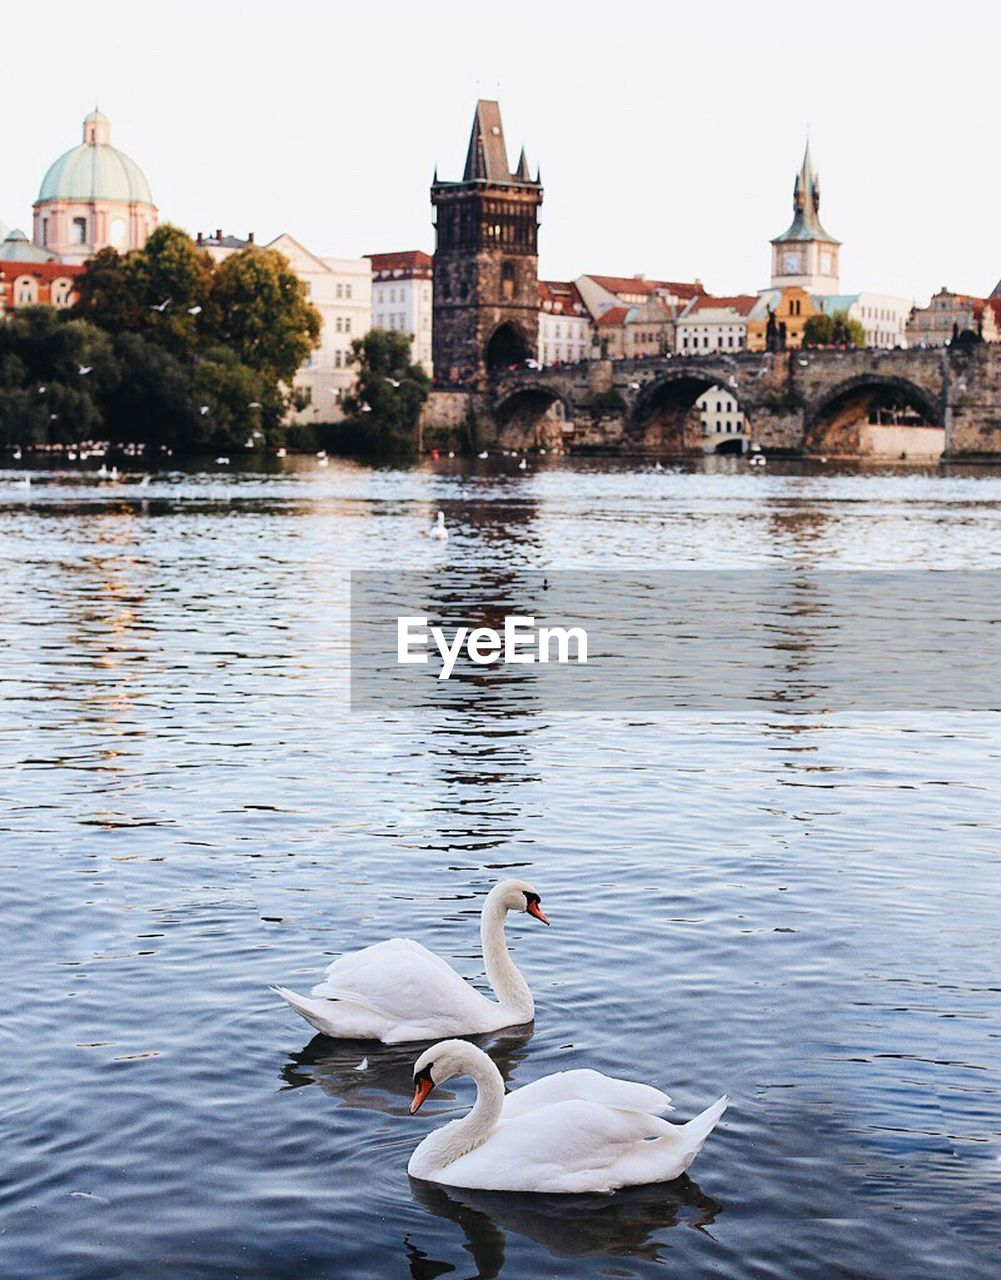 water, bird, architecture, swan, lake, animal themes, animals in the wild, day, swimming, outdoors, waterfront, travel destinations, built structure, nature, no people, sky